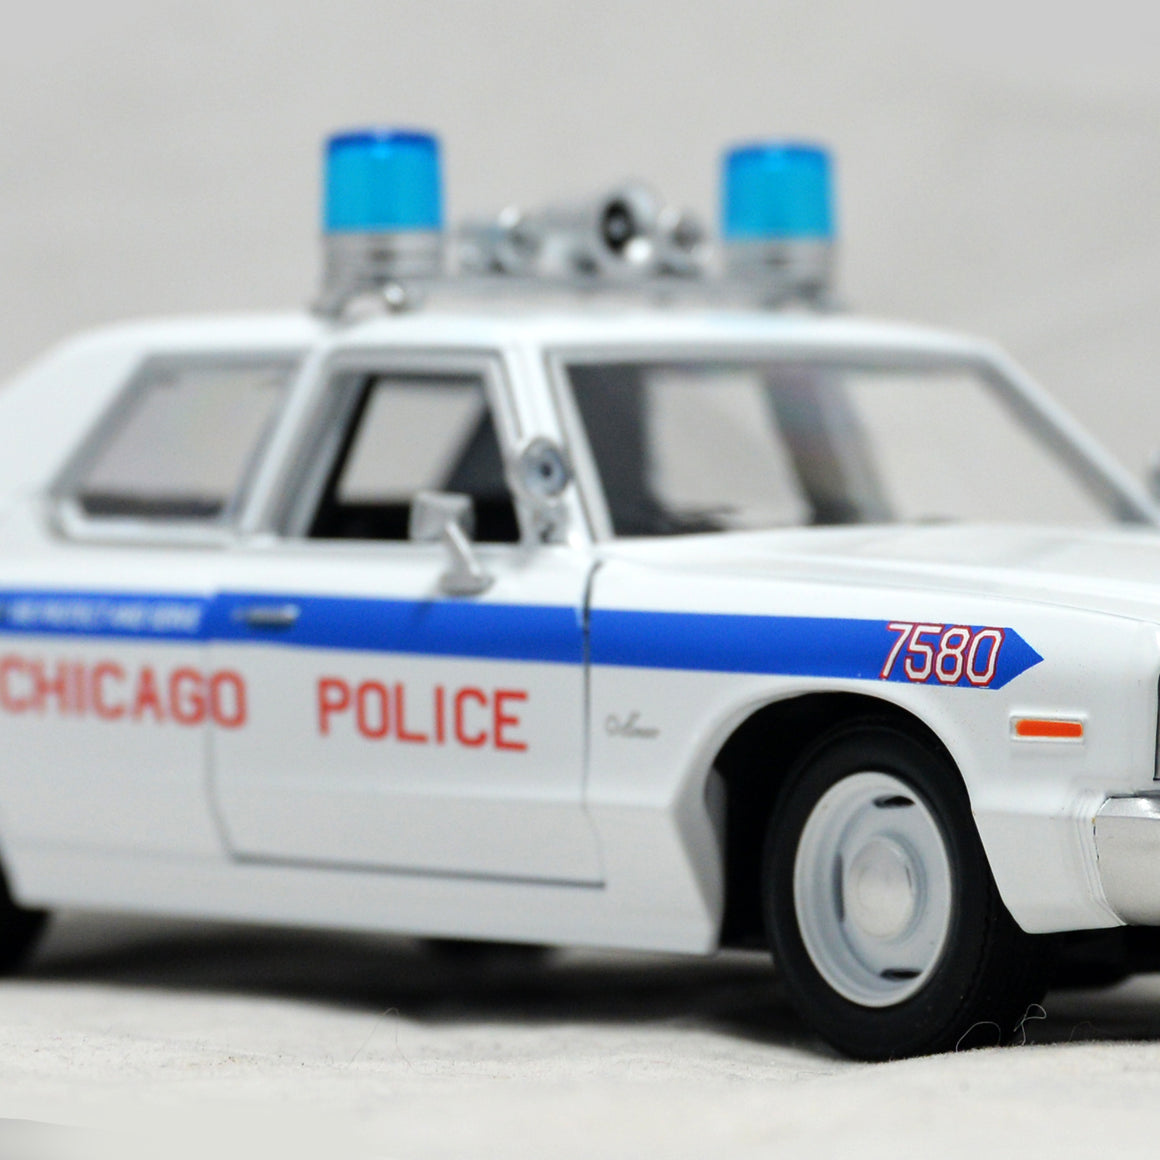 BLUES BROTHERS - 1975 DODGE MONACO CHICAGO POLICE 1/24 Die Cast Car Exclusive Elite Edition Custom Display